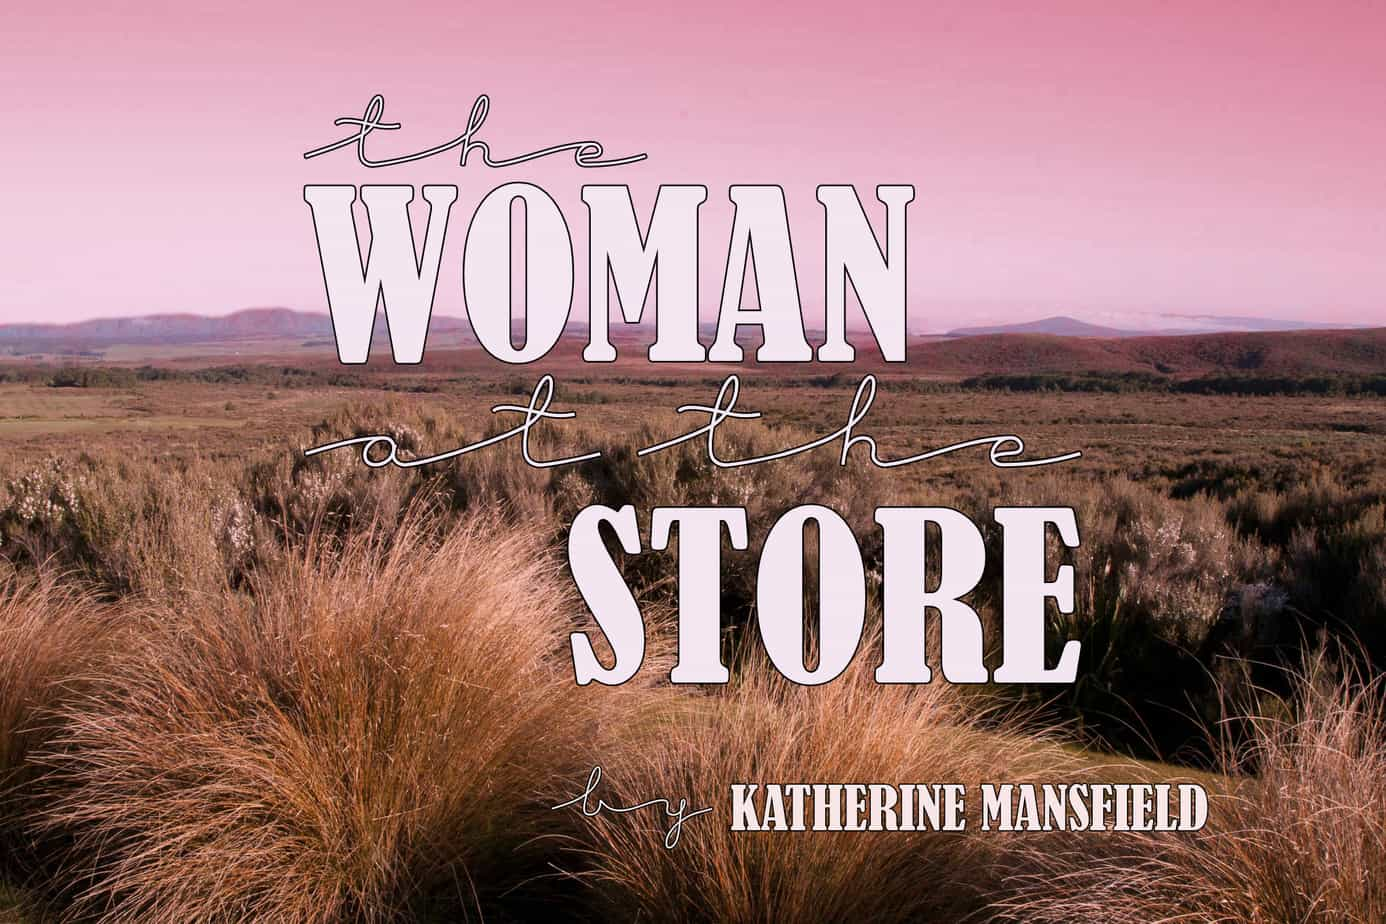 The Woman At The Store text